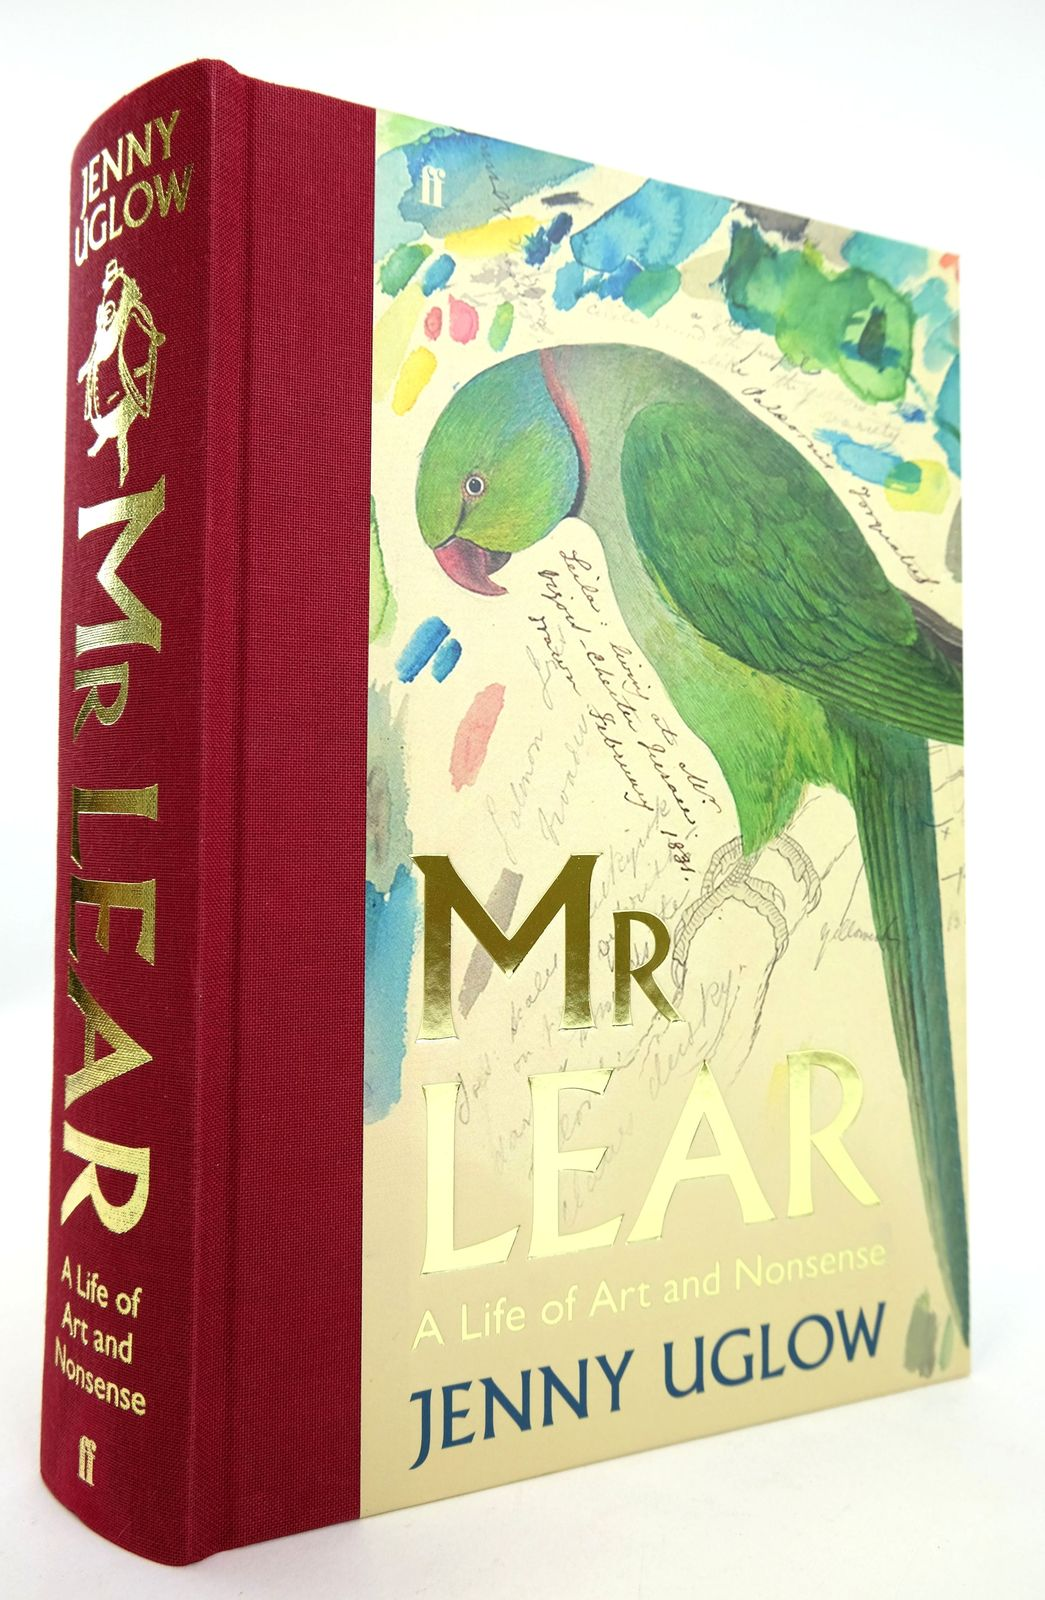 Photo of MR LEAR: A LIFE OF ART AND NONSENSE- Stock Number: 1818940